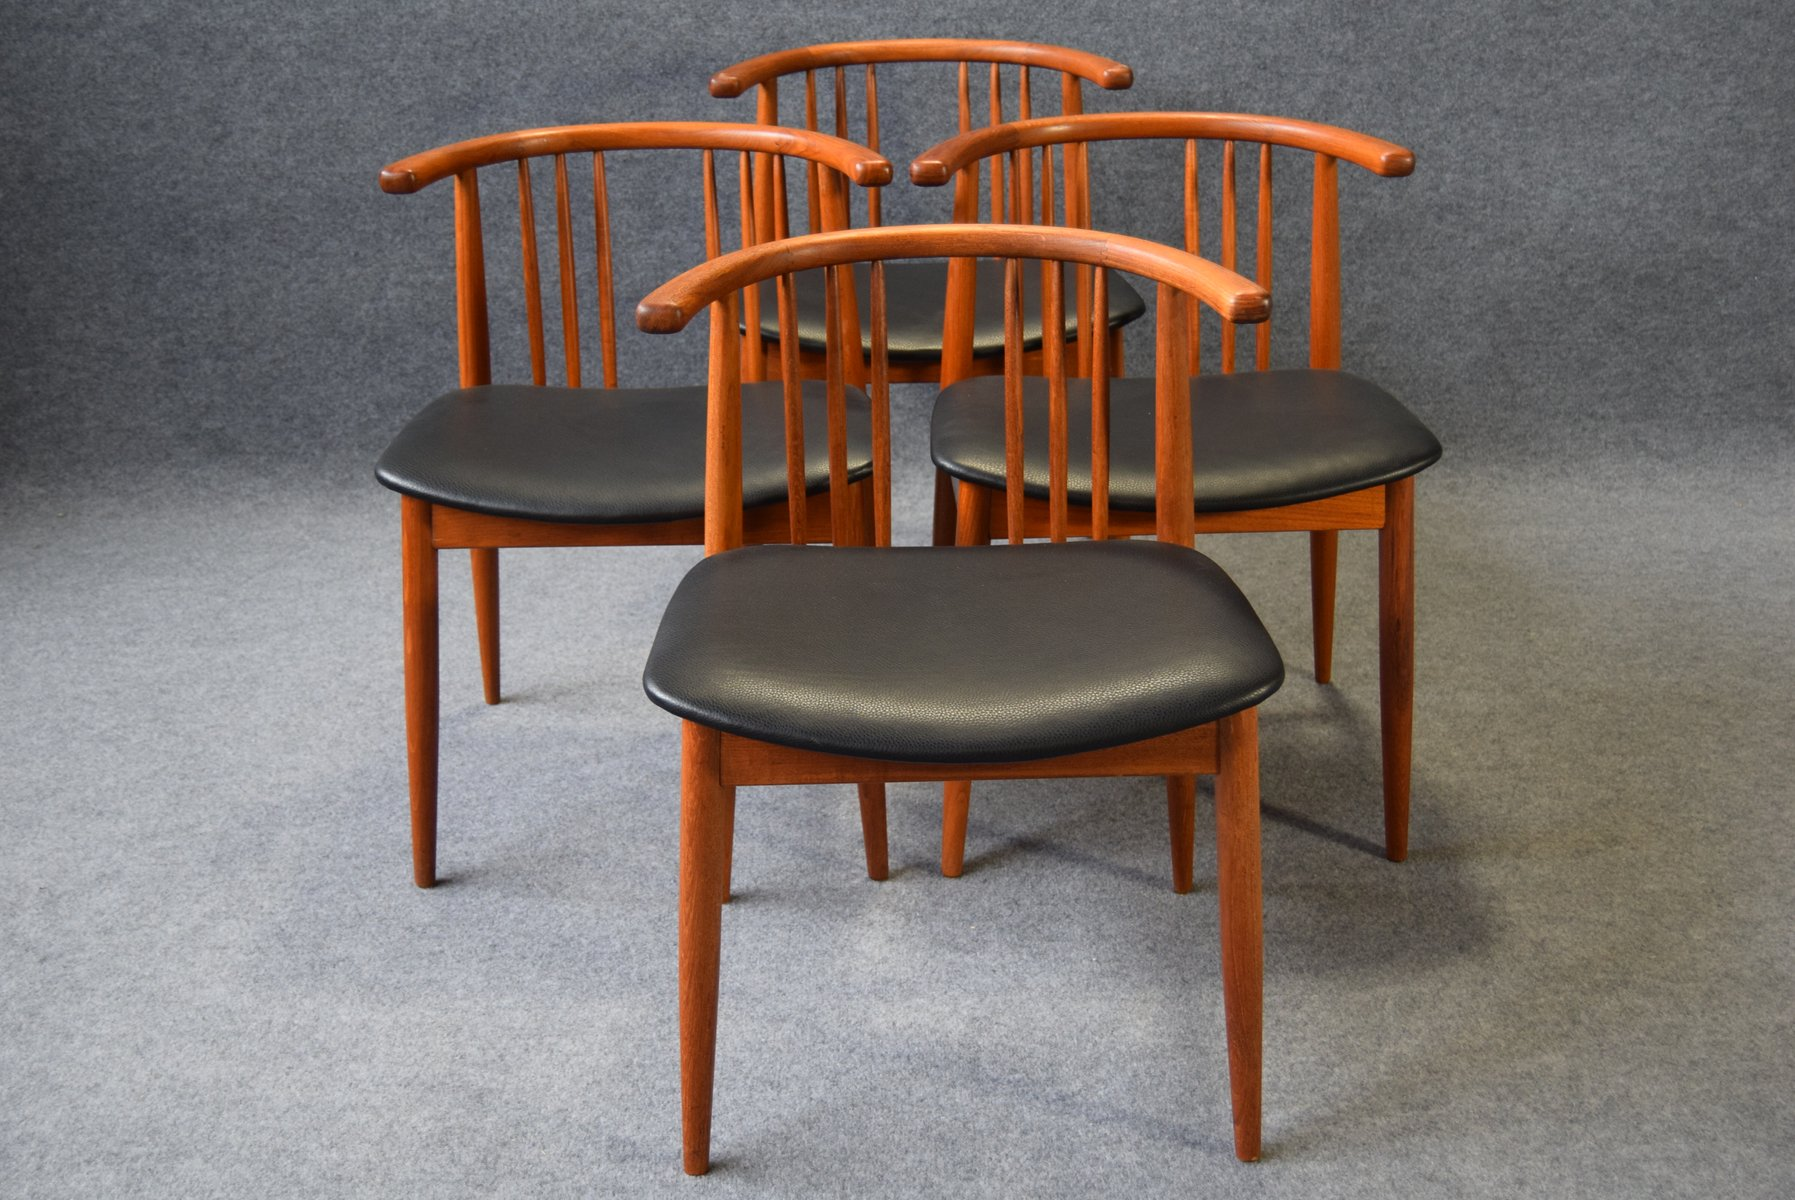 teak dining chairs from h p hansen randers set of 4 for sale at pamono. Black Bedroom Furniture Sets. Home Design Ideas